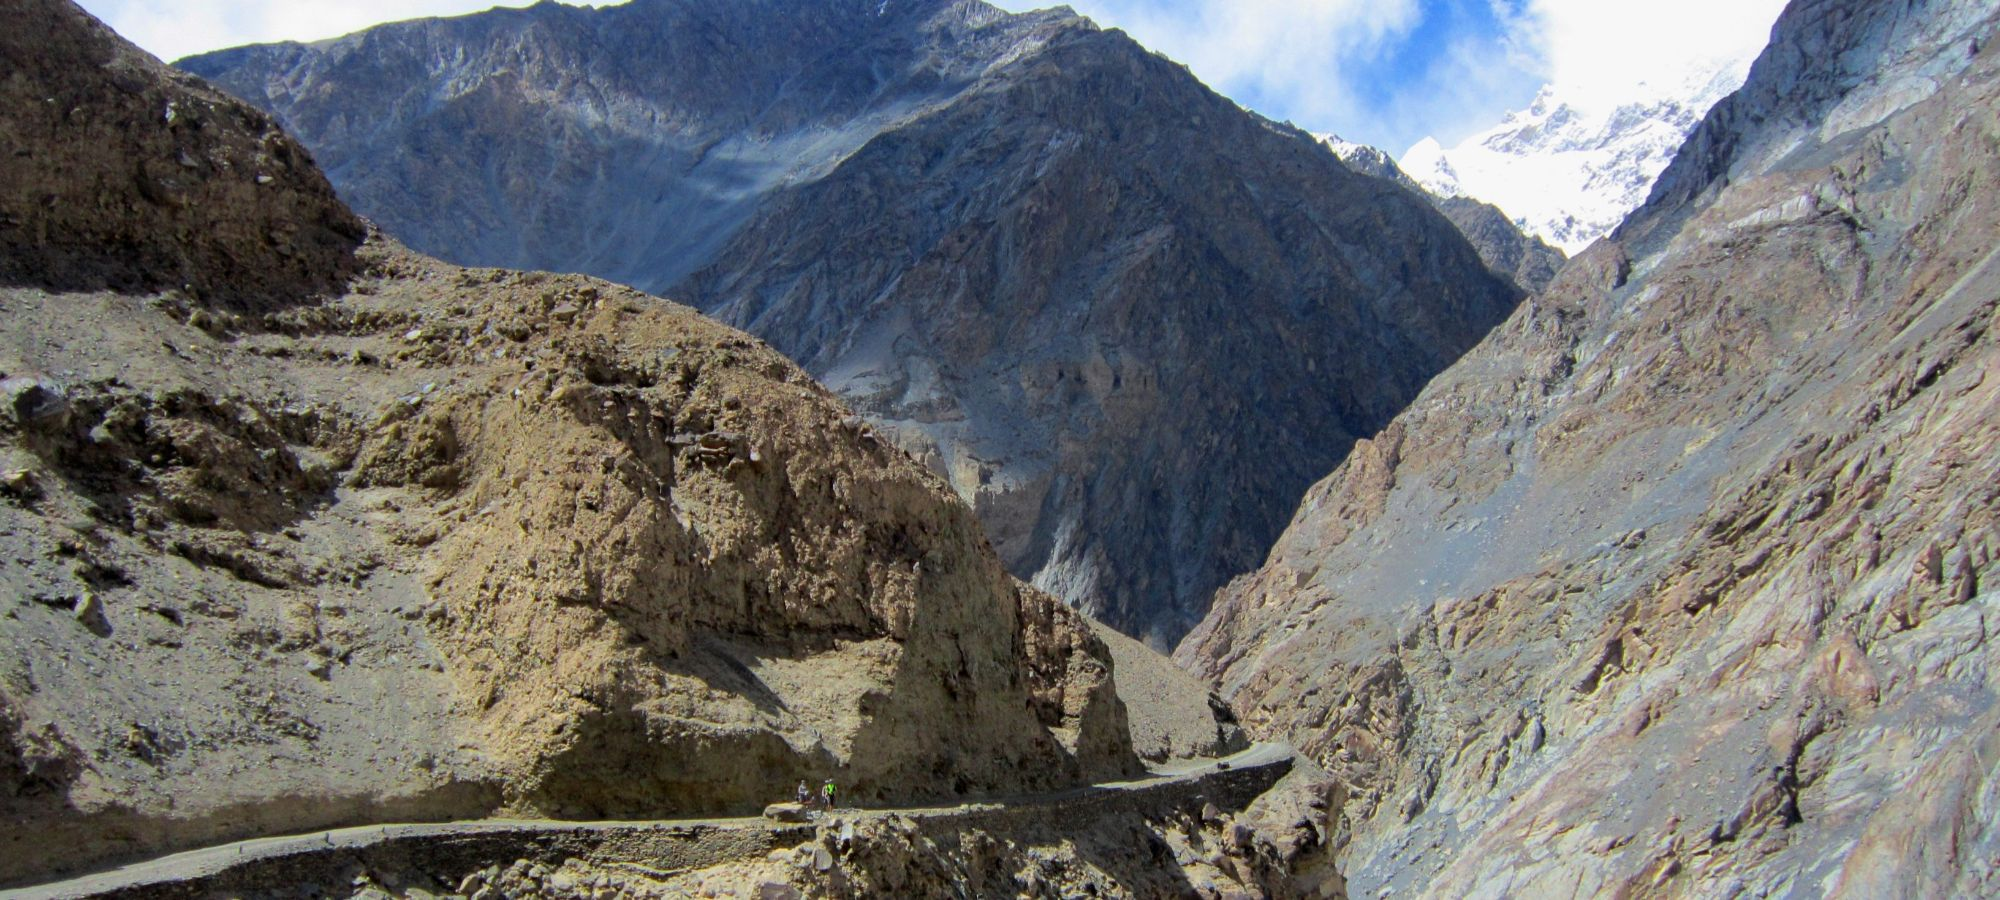 Photos from our Karakoram Highway to Kyrgyzstan Cycling Holiday